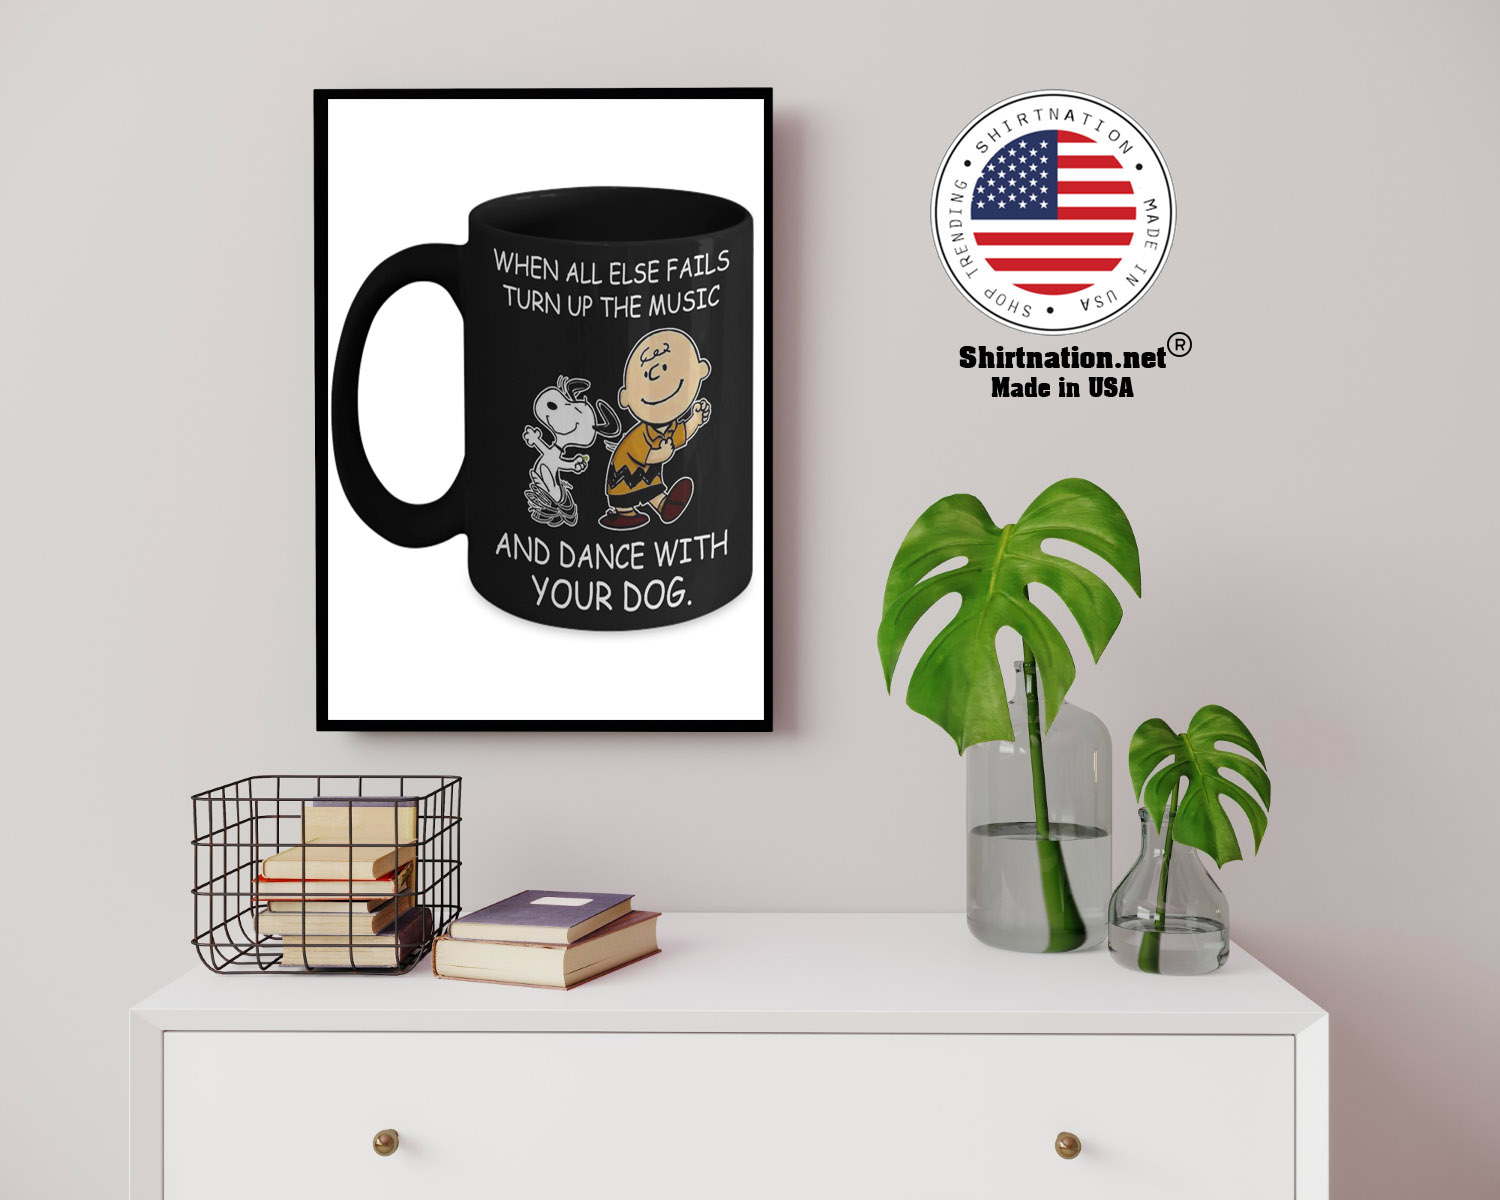 Peanut Snoopy When all else fails turn up the music and dance with your dog mug 13